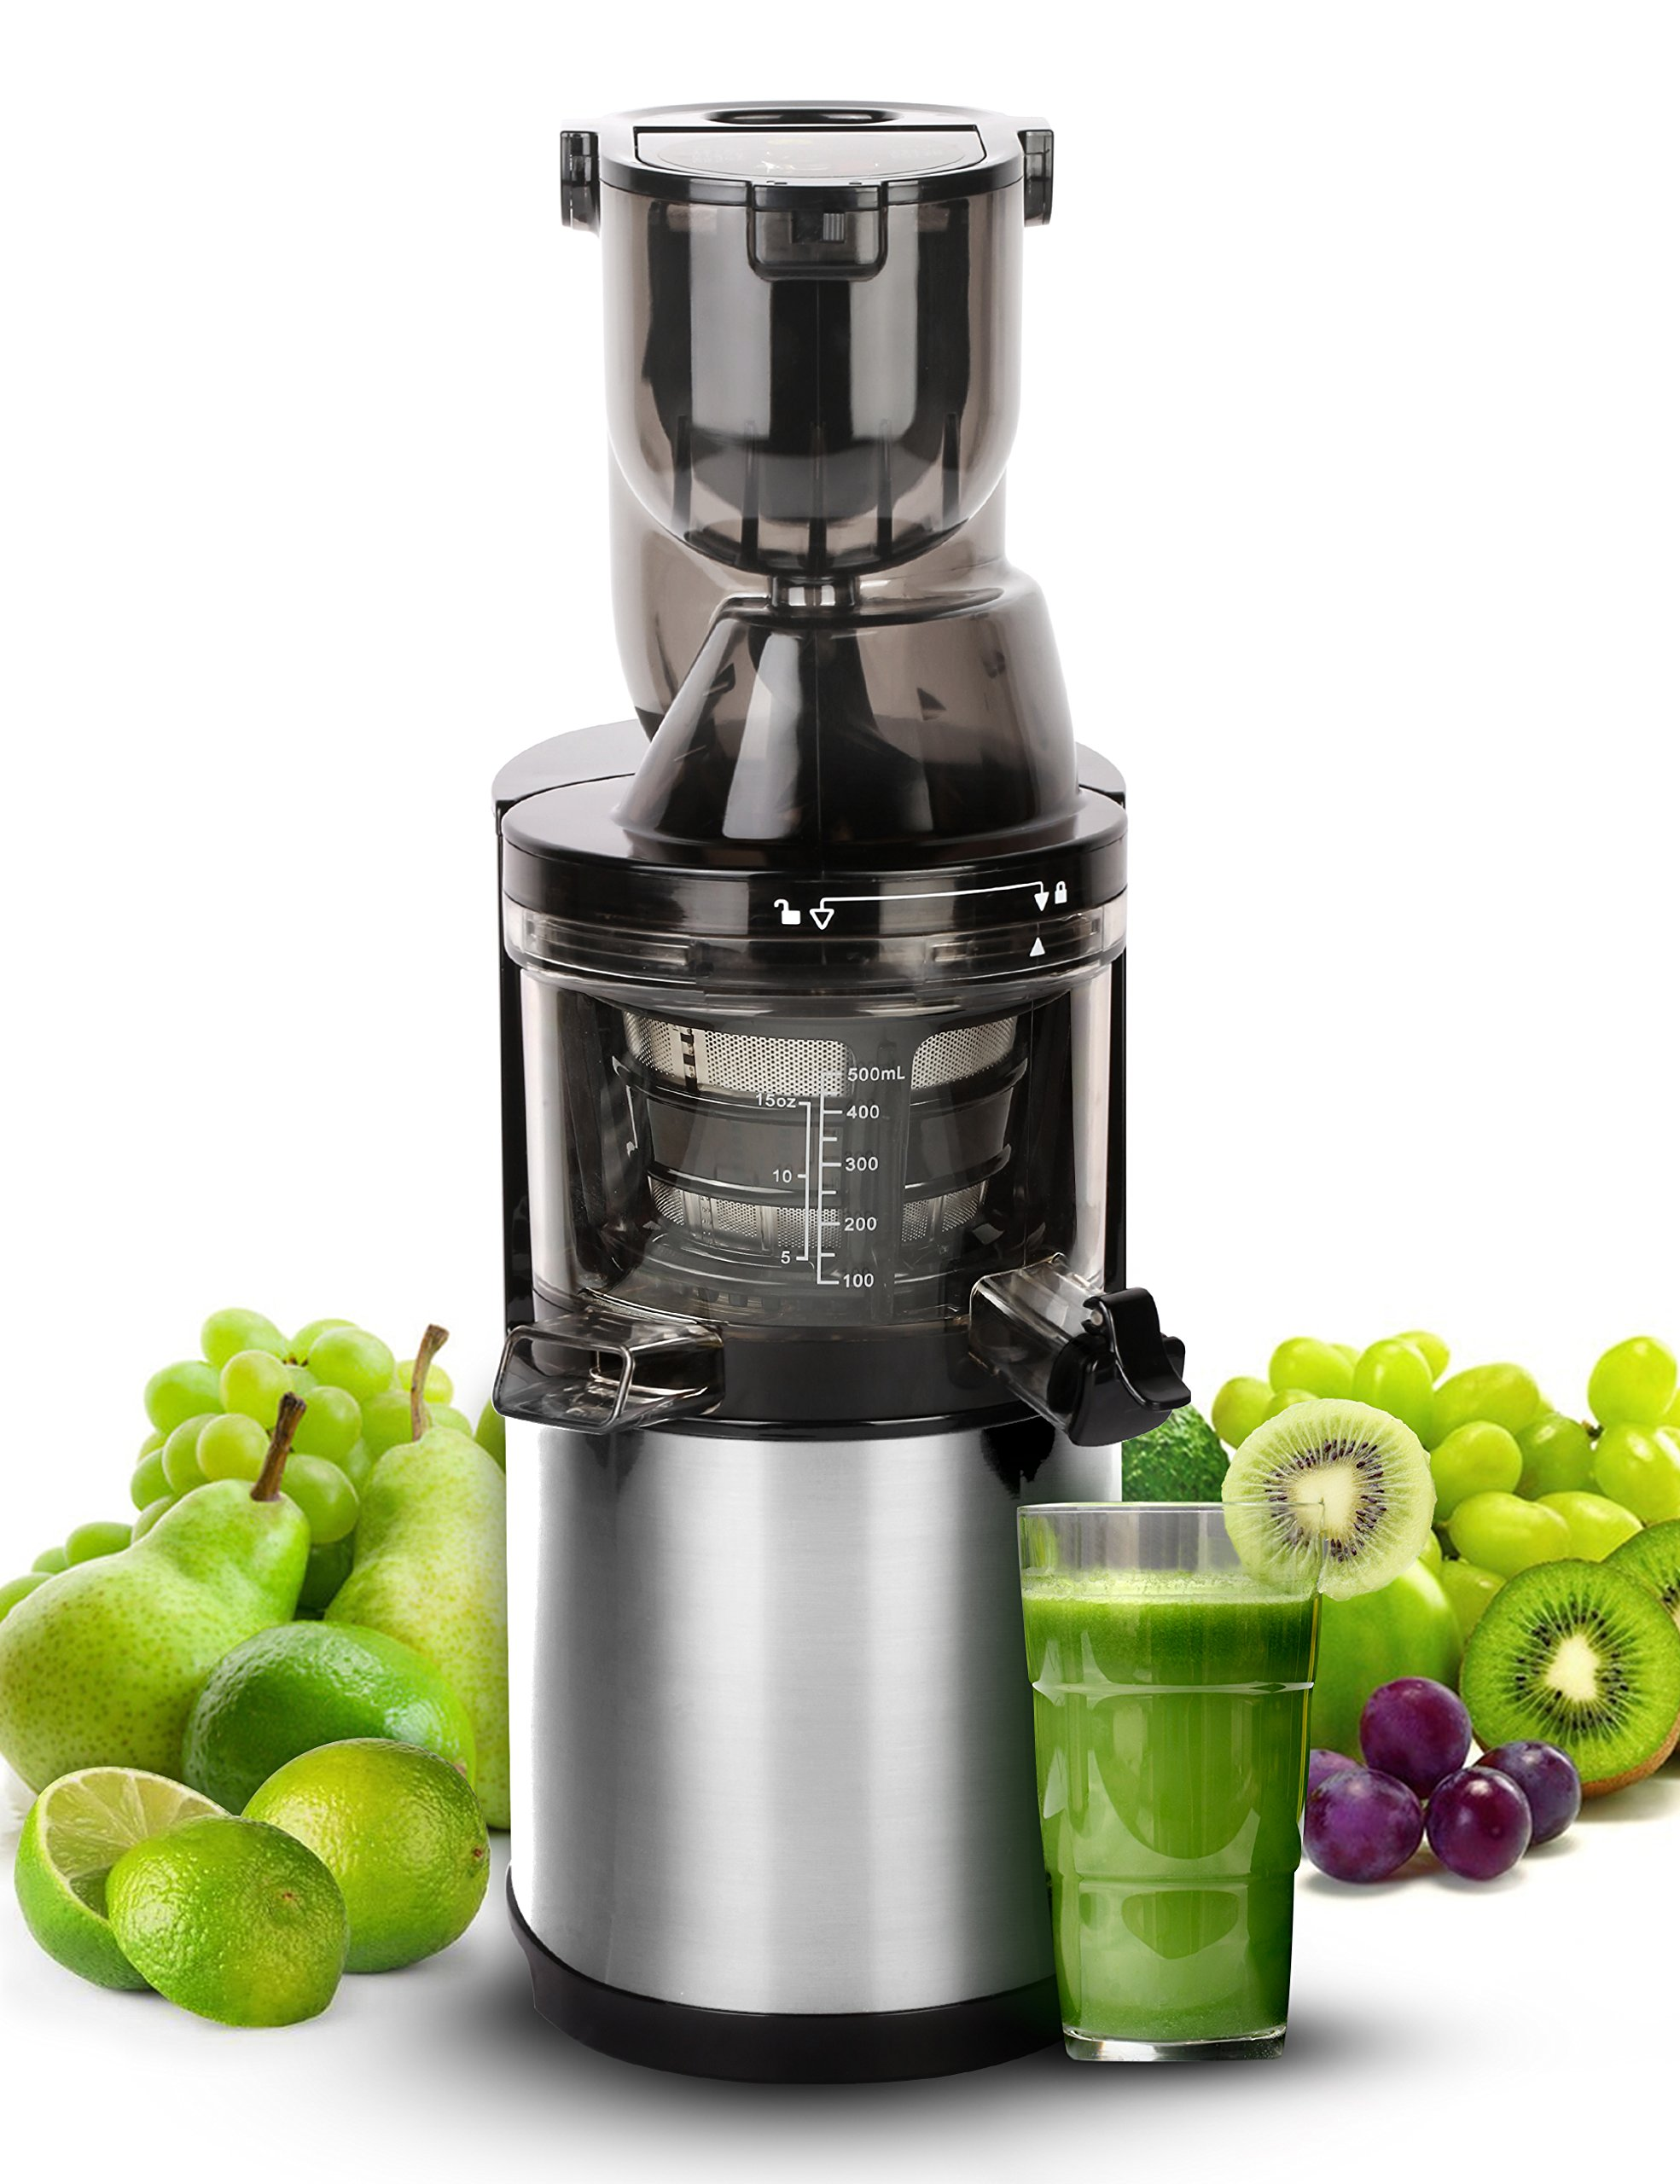 Slow Masticating Juicer Extractor, Cold Press Juicer Machine with 250W Quiet Efficient Motor/Reverse Function/BPA-Free,Easy to Clean with Brush,Juice Recipes for Vegetables and Fruits by Wonlink